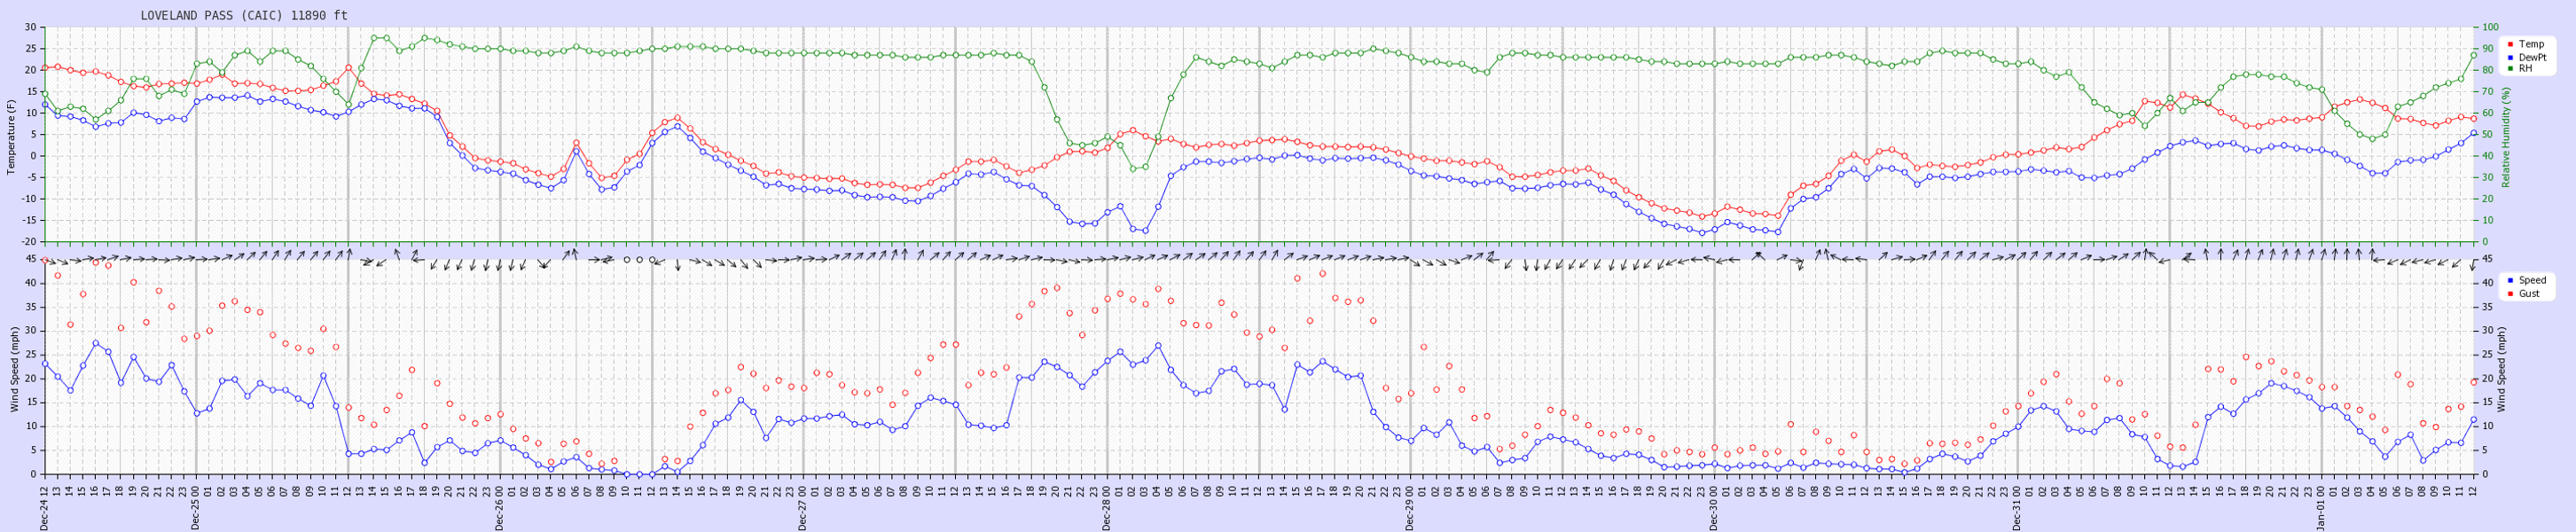 <b>Figure 3:</b> Hourly data for the week prior to the accident from the Loveland Pass weather station. There were two periods of strong, gusty southwest and west winds. (<a href=javascript:void(0); onClick=win=window.open('https://caic-production.imgix.net/lt85z03wgian5s3rtopqc9vfyo5p?ixlib=php-3.1.0&s=5a1be5bde5d5cade519aa7905317f46c','caic_media','resizable=1,height=820,width=840,scrollbars=yes');win.focus();return false;>see full sized image</a>)